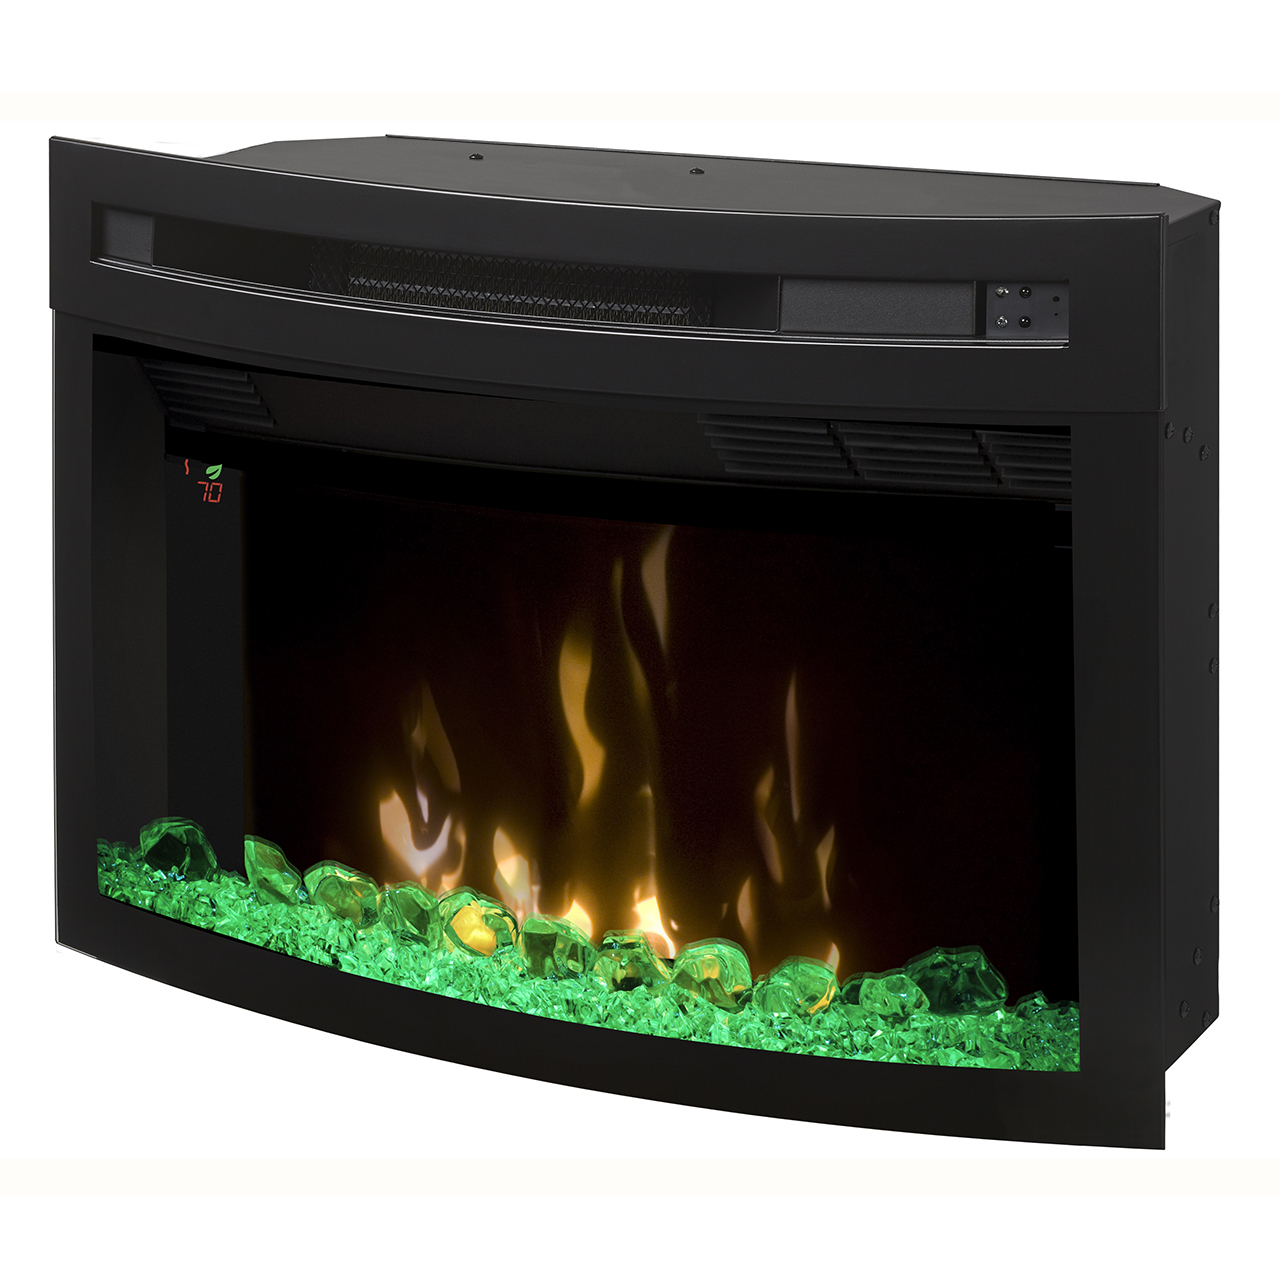 Dimplex 25 Quot Multi Fire Xd Electric Firebox Pf2325cg